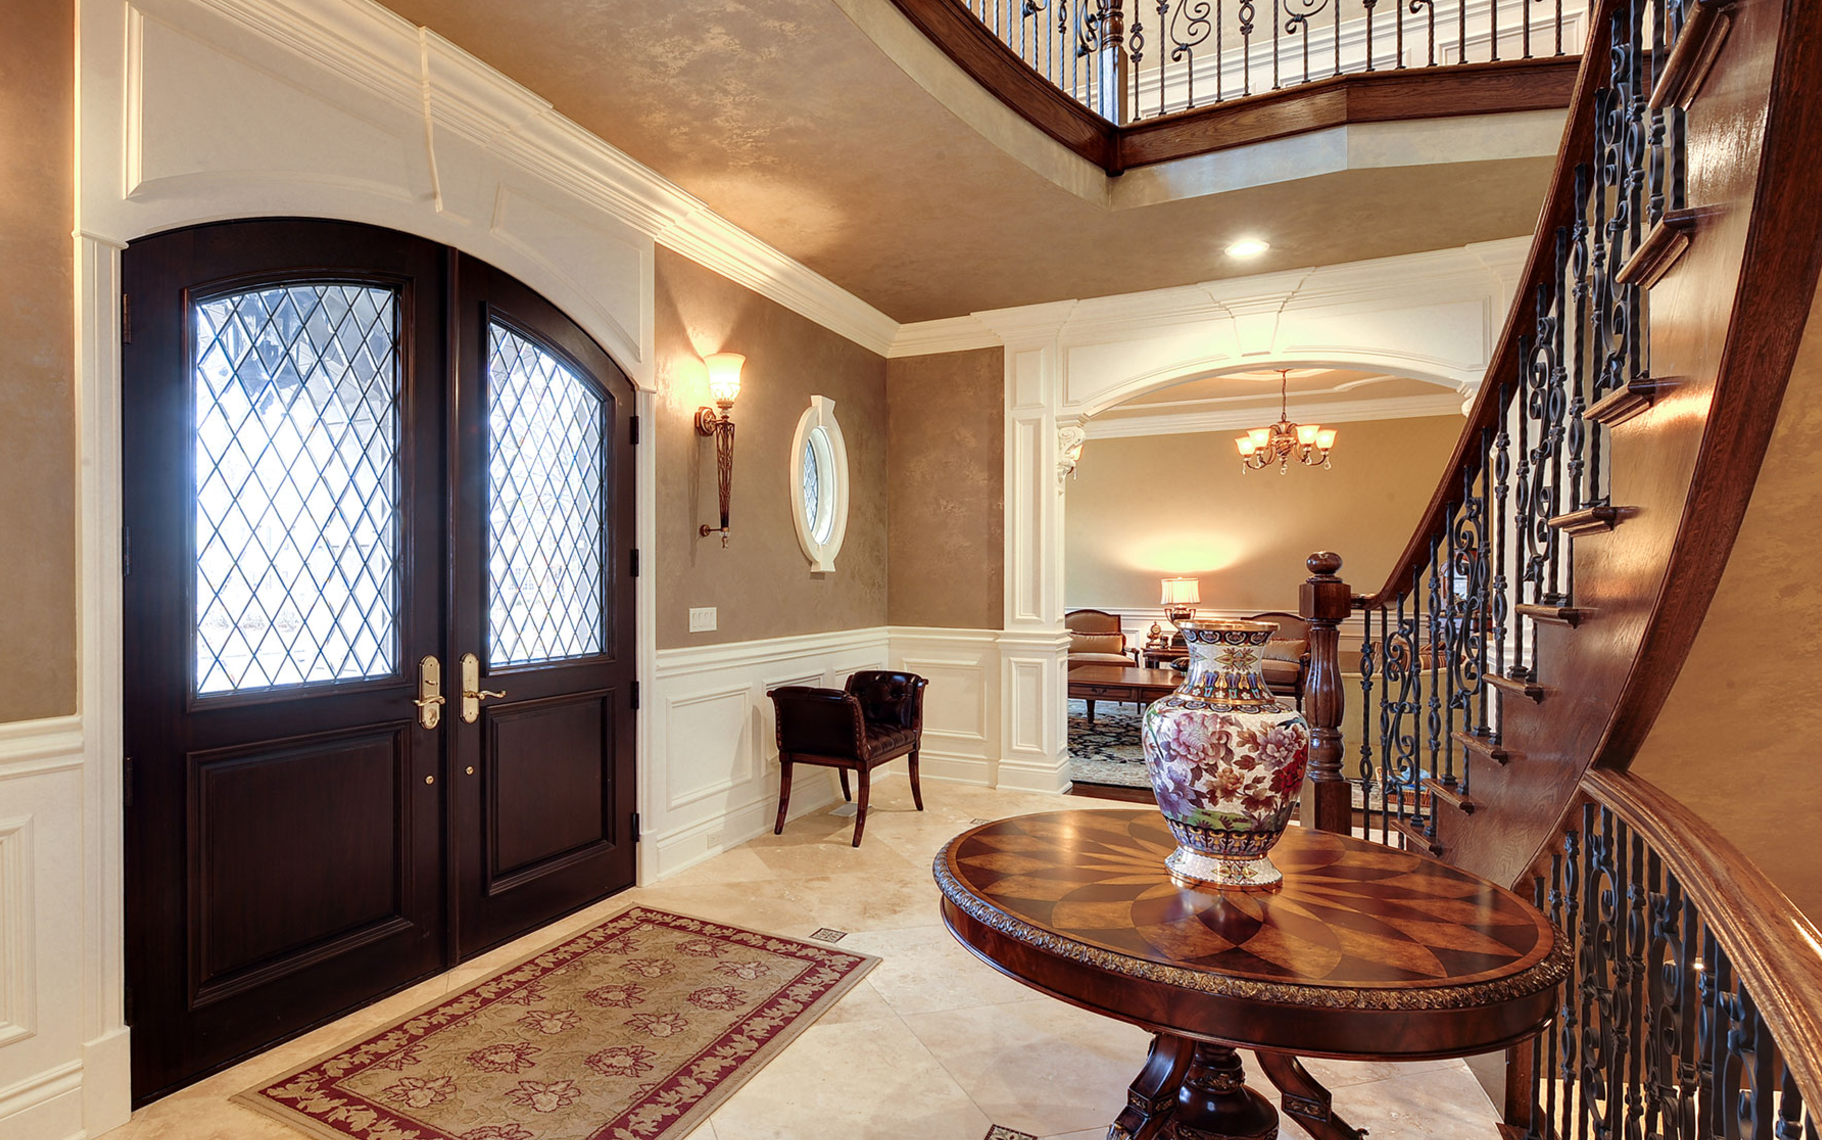 Home interior view custom solid mahogany wood double door with transom and clear glass